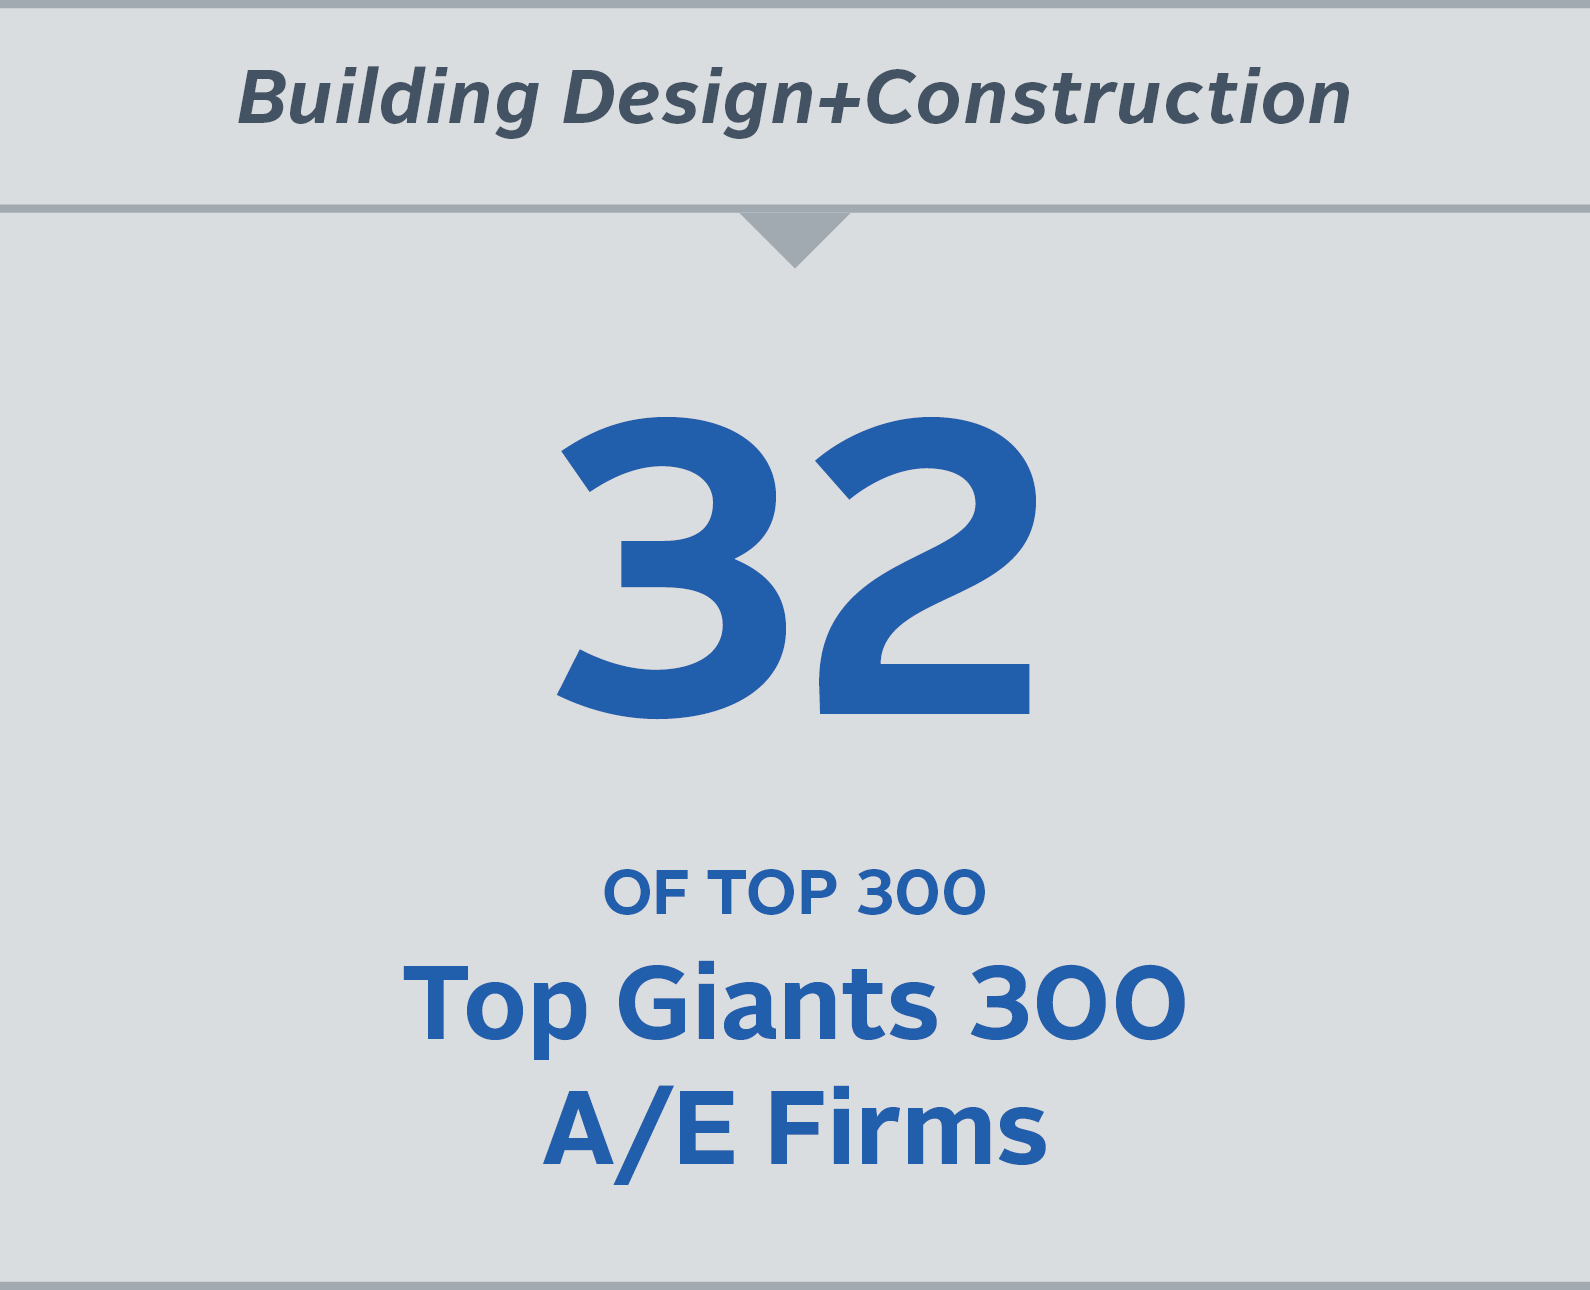 Number 32 of top 300 Top Giants 300 A/E Firms.